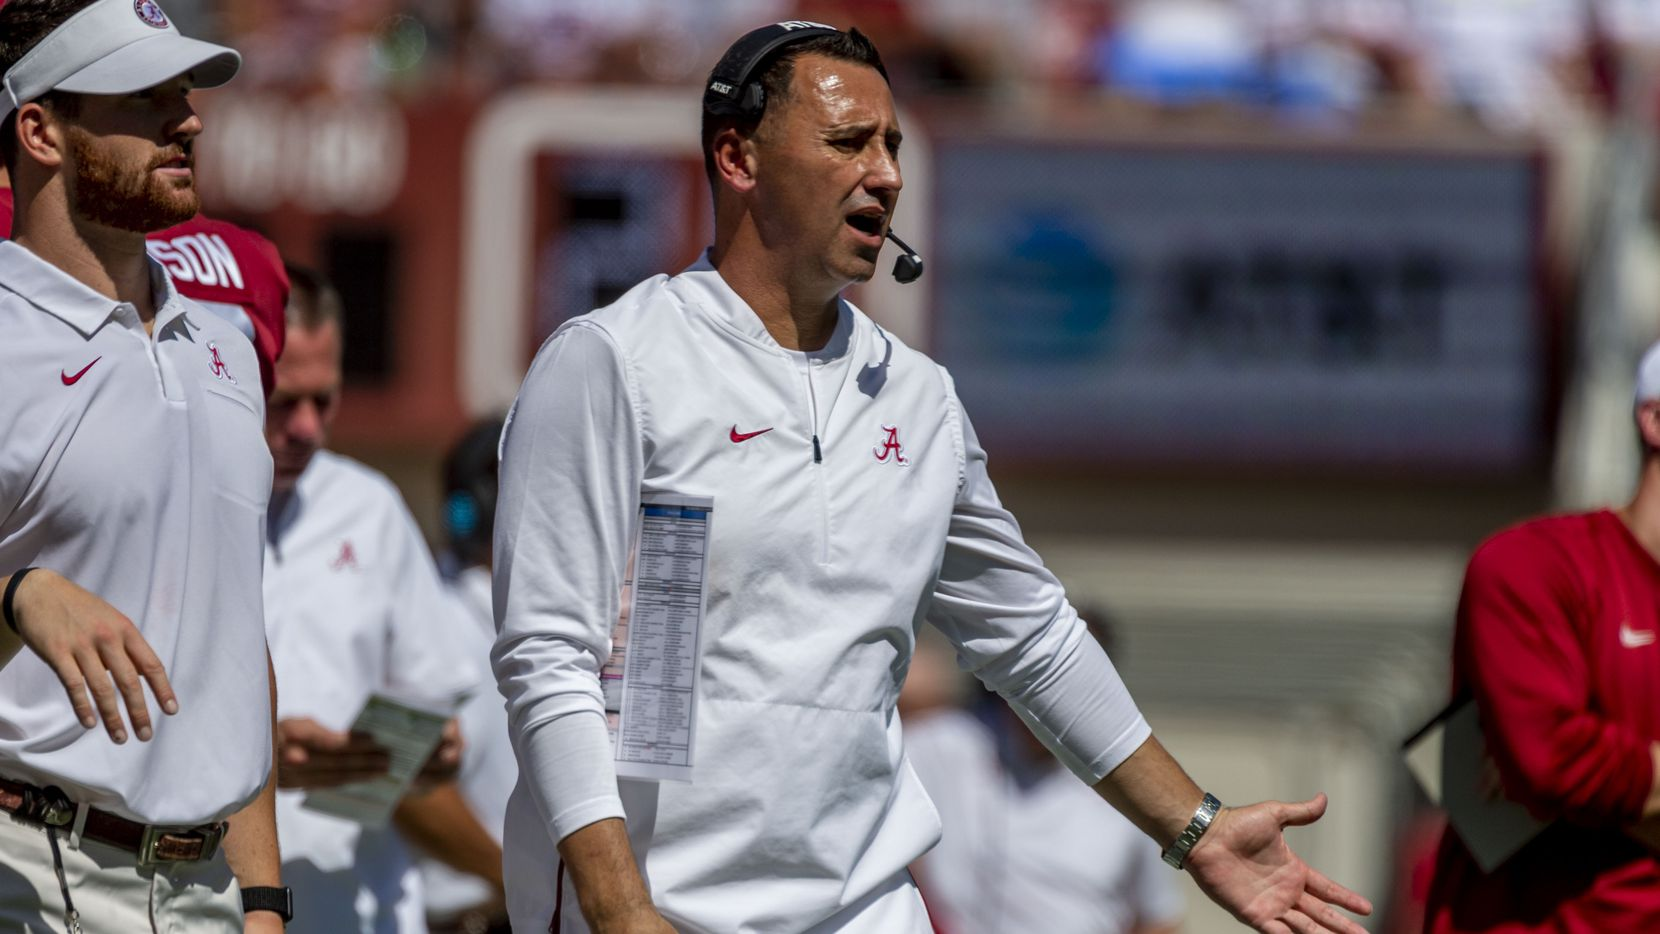 Alabama offensive coordinator Steve Sarkisian yells to his players during the first half of an NCAA college football game against Southern Miss, Saturday, Sept. 21, 2019, in Tuscaloosa, Ala.